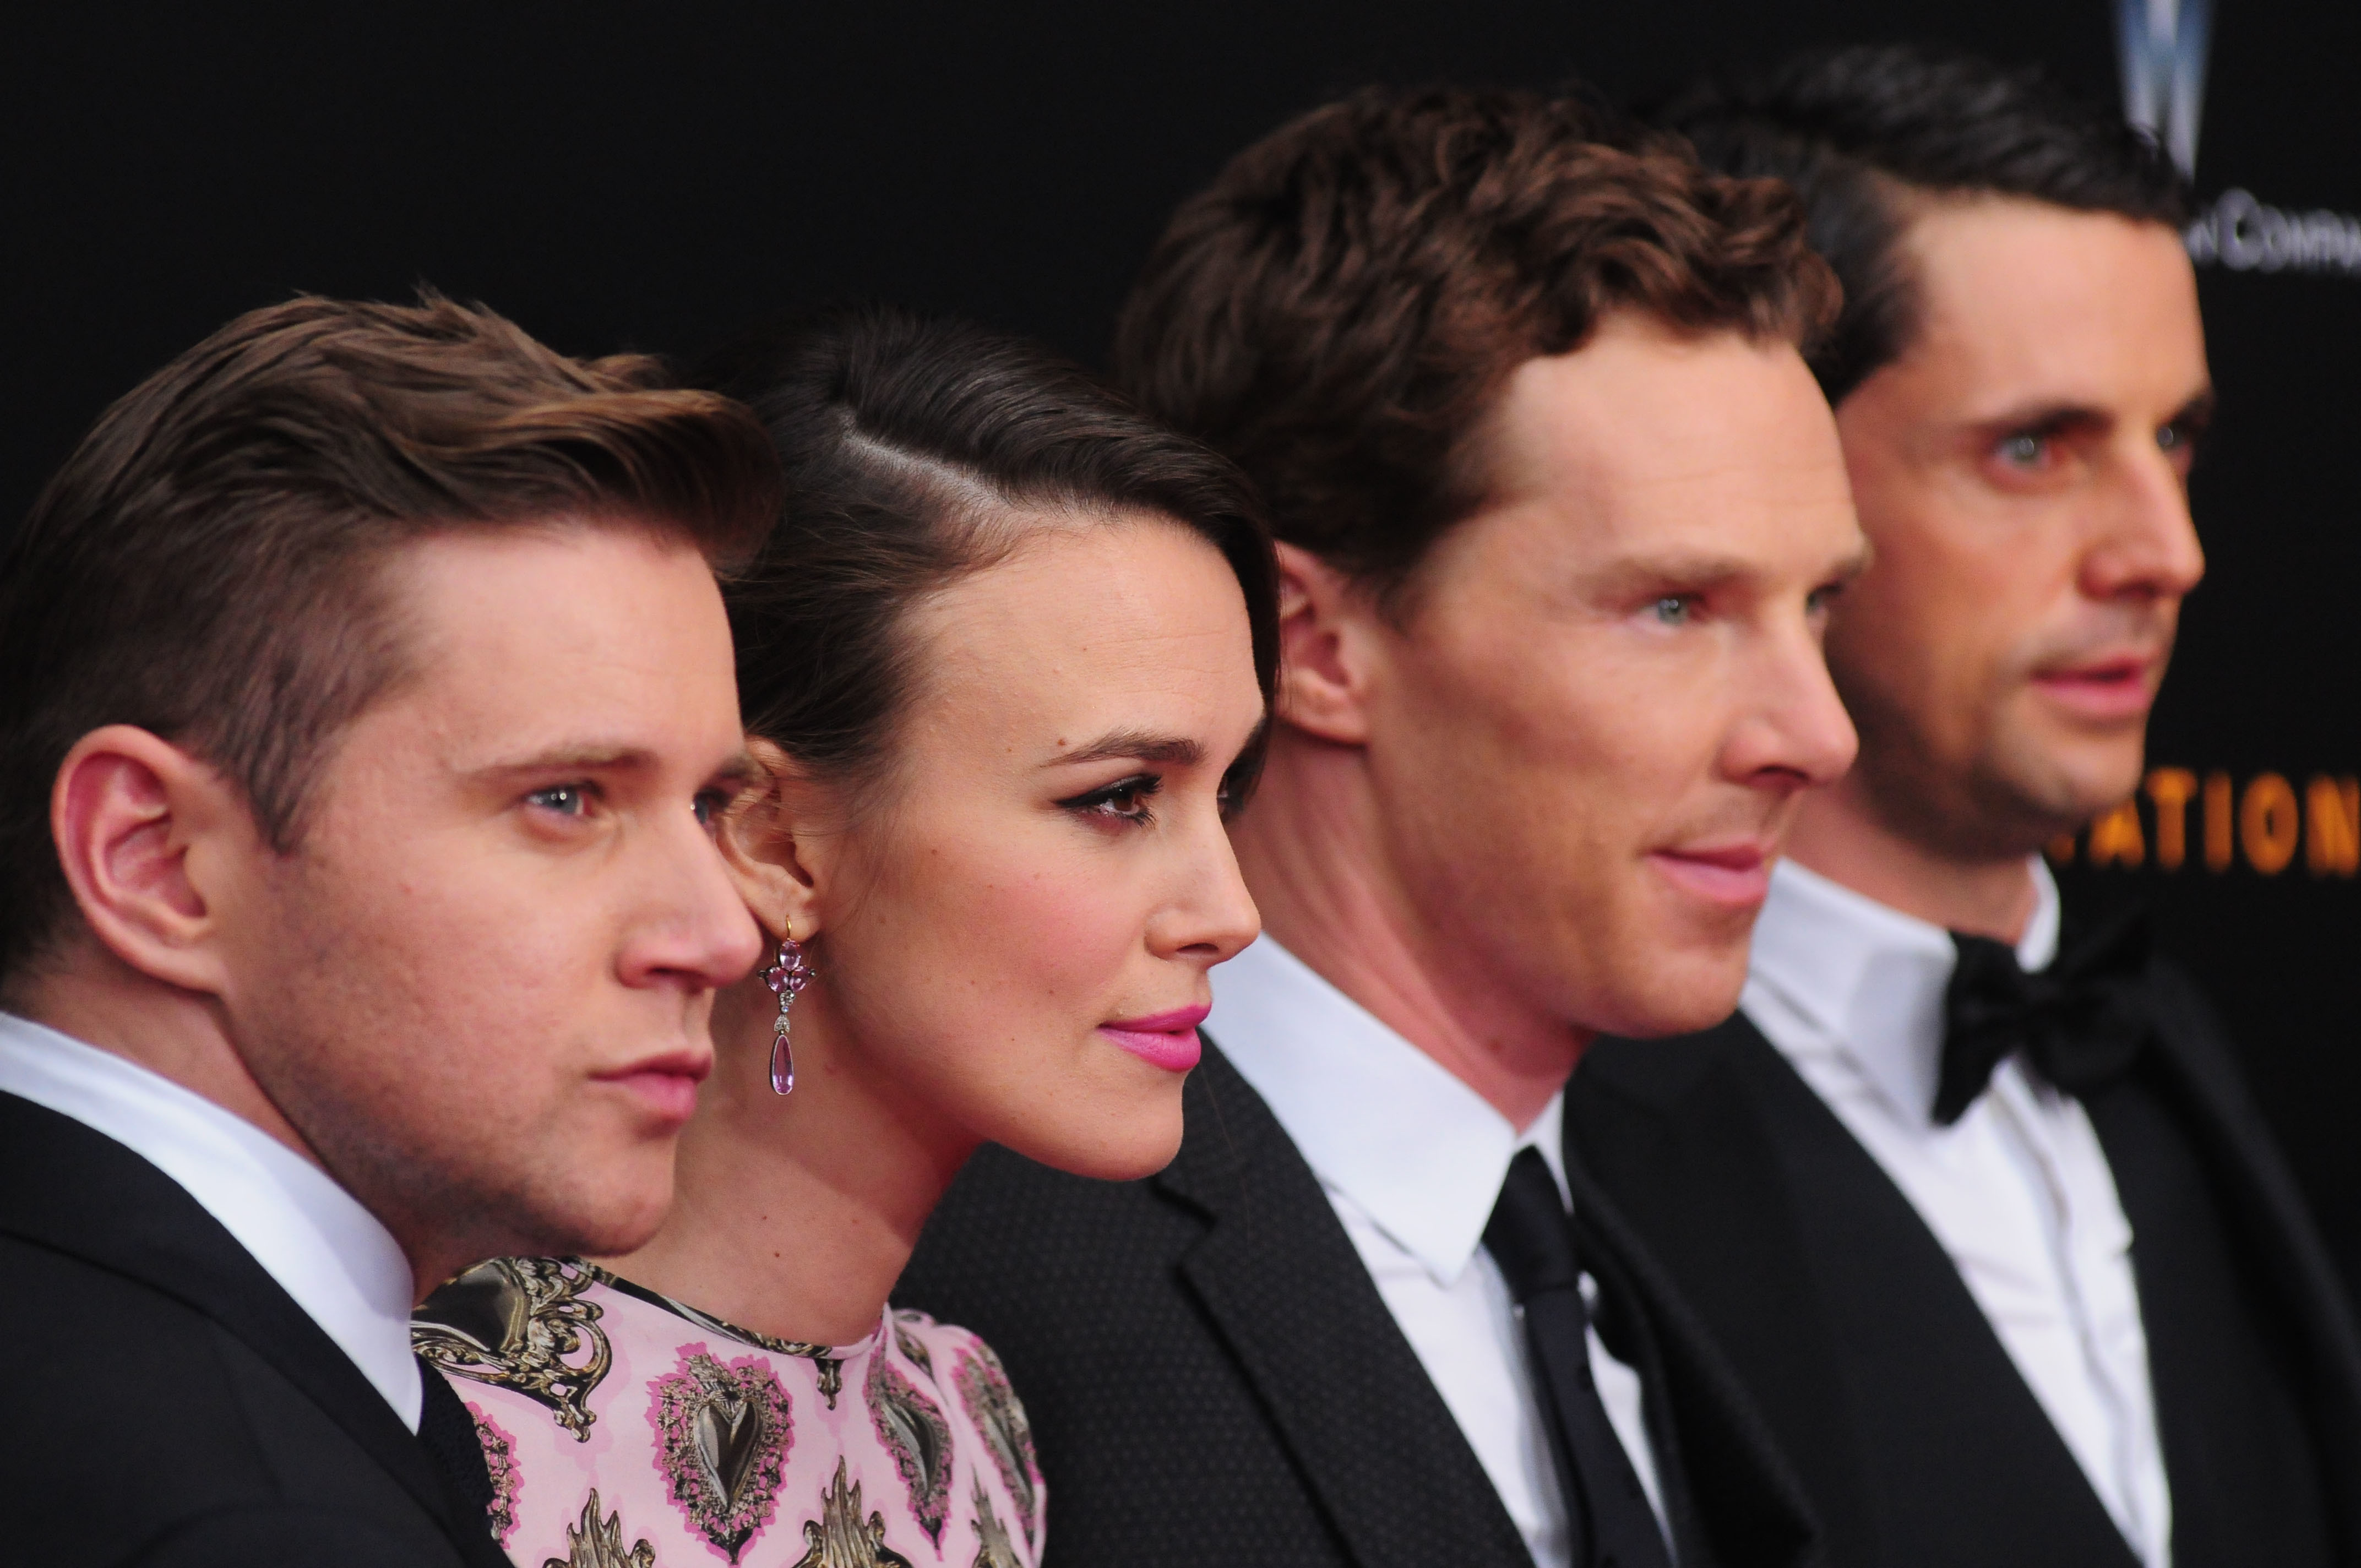 The cast of The Imitation Game